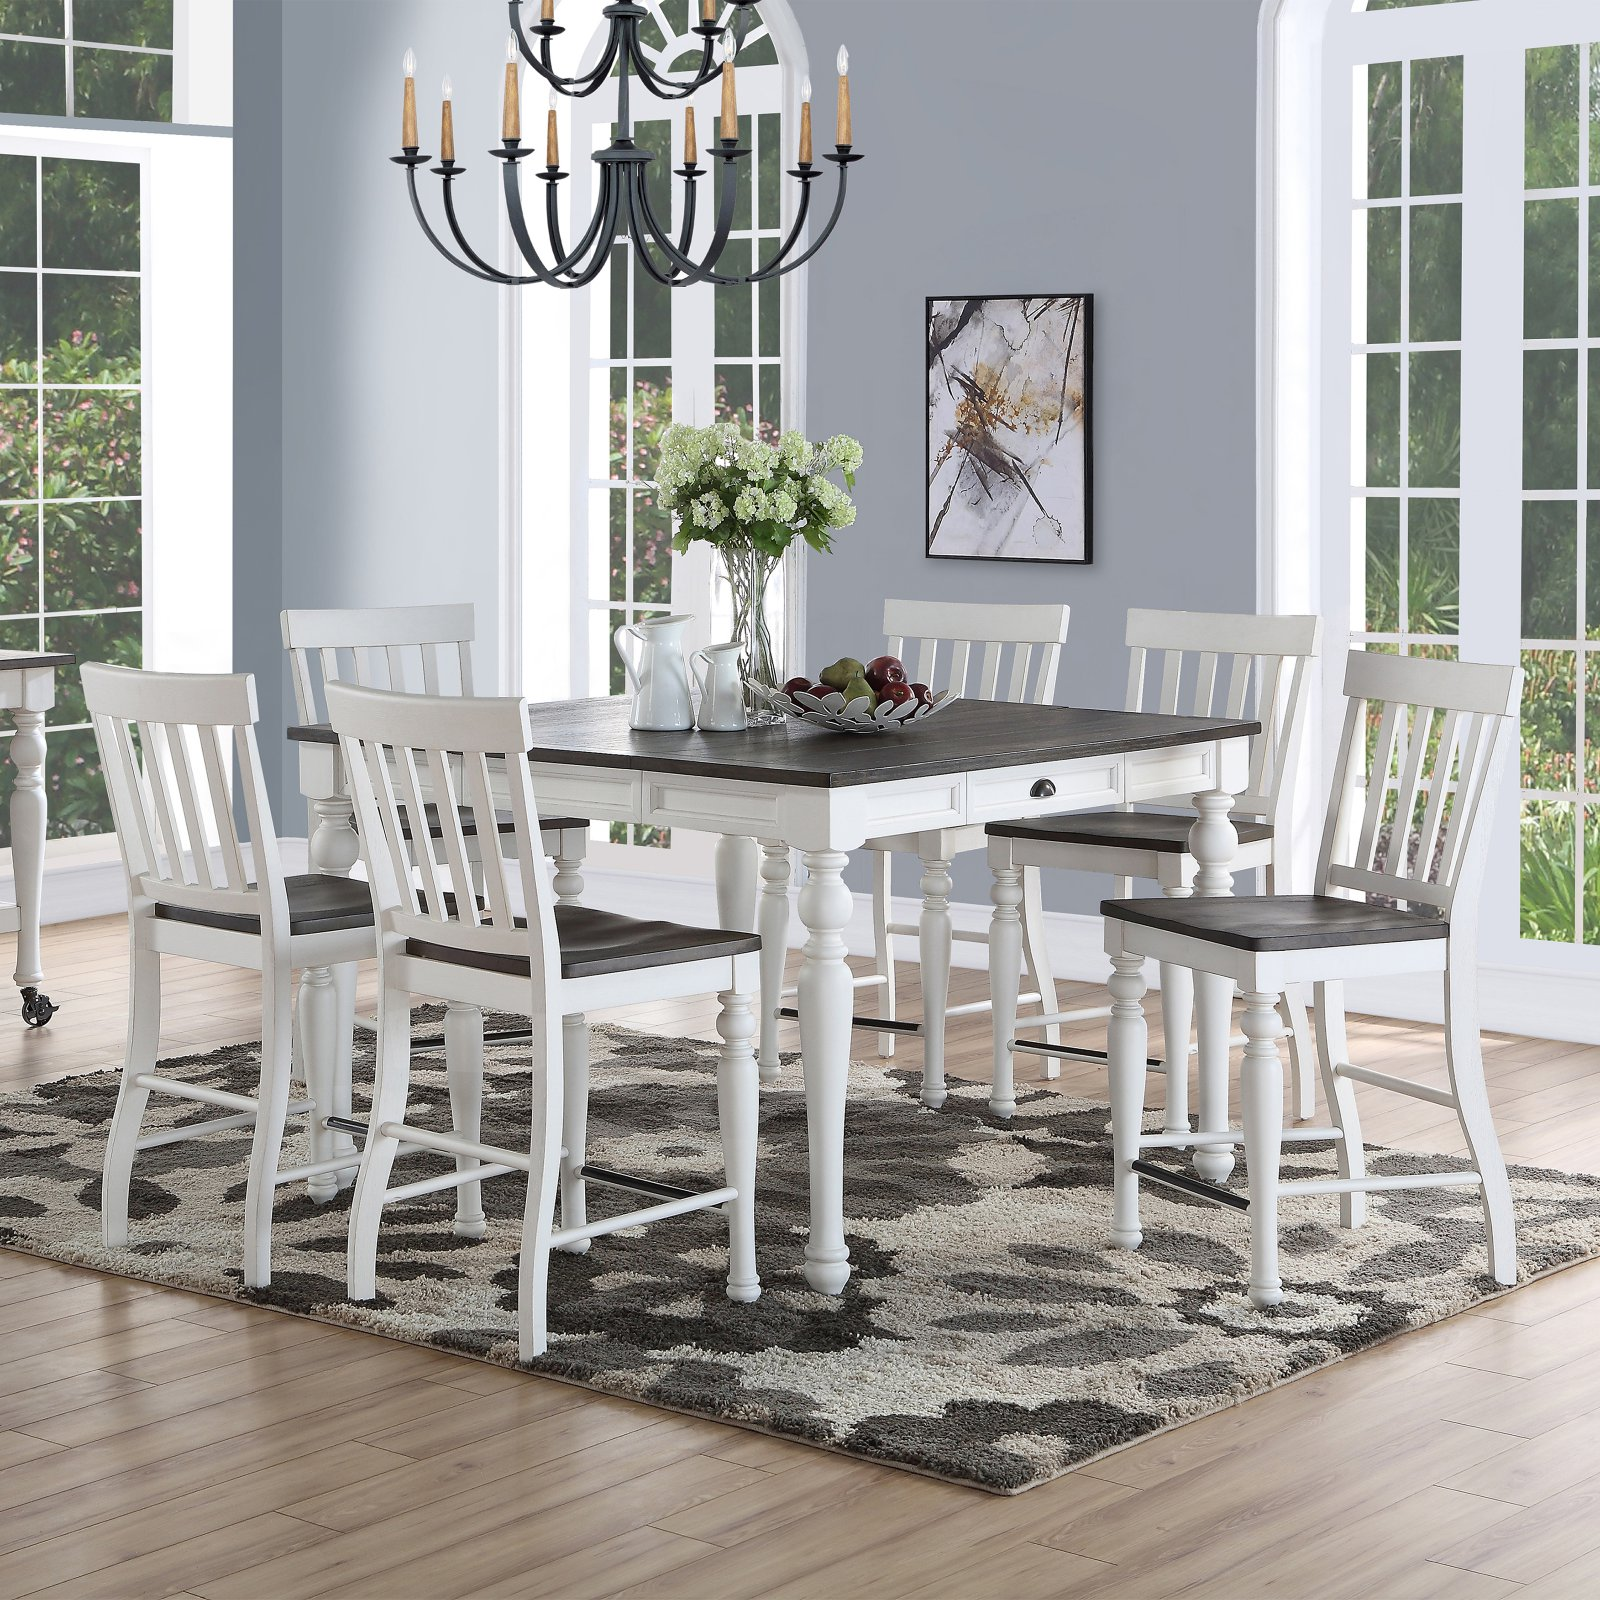 Steve Silver Co. Joanna 7 Piece Transitional Counter Height Dining Set